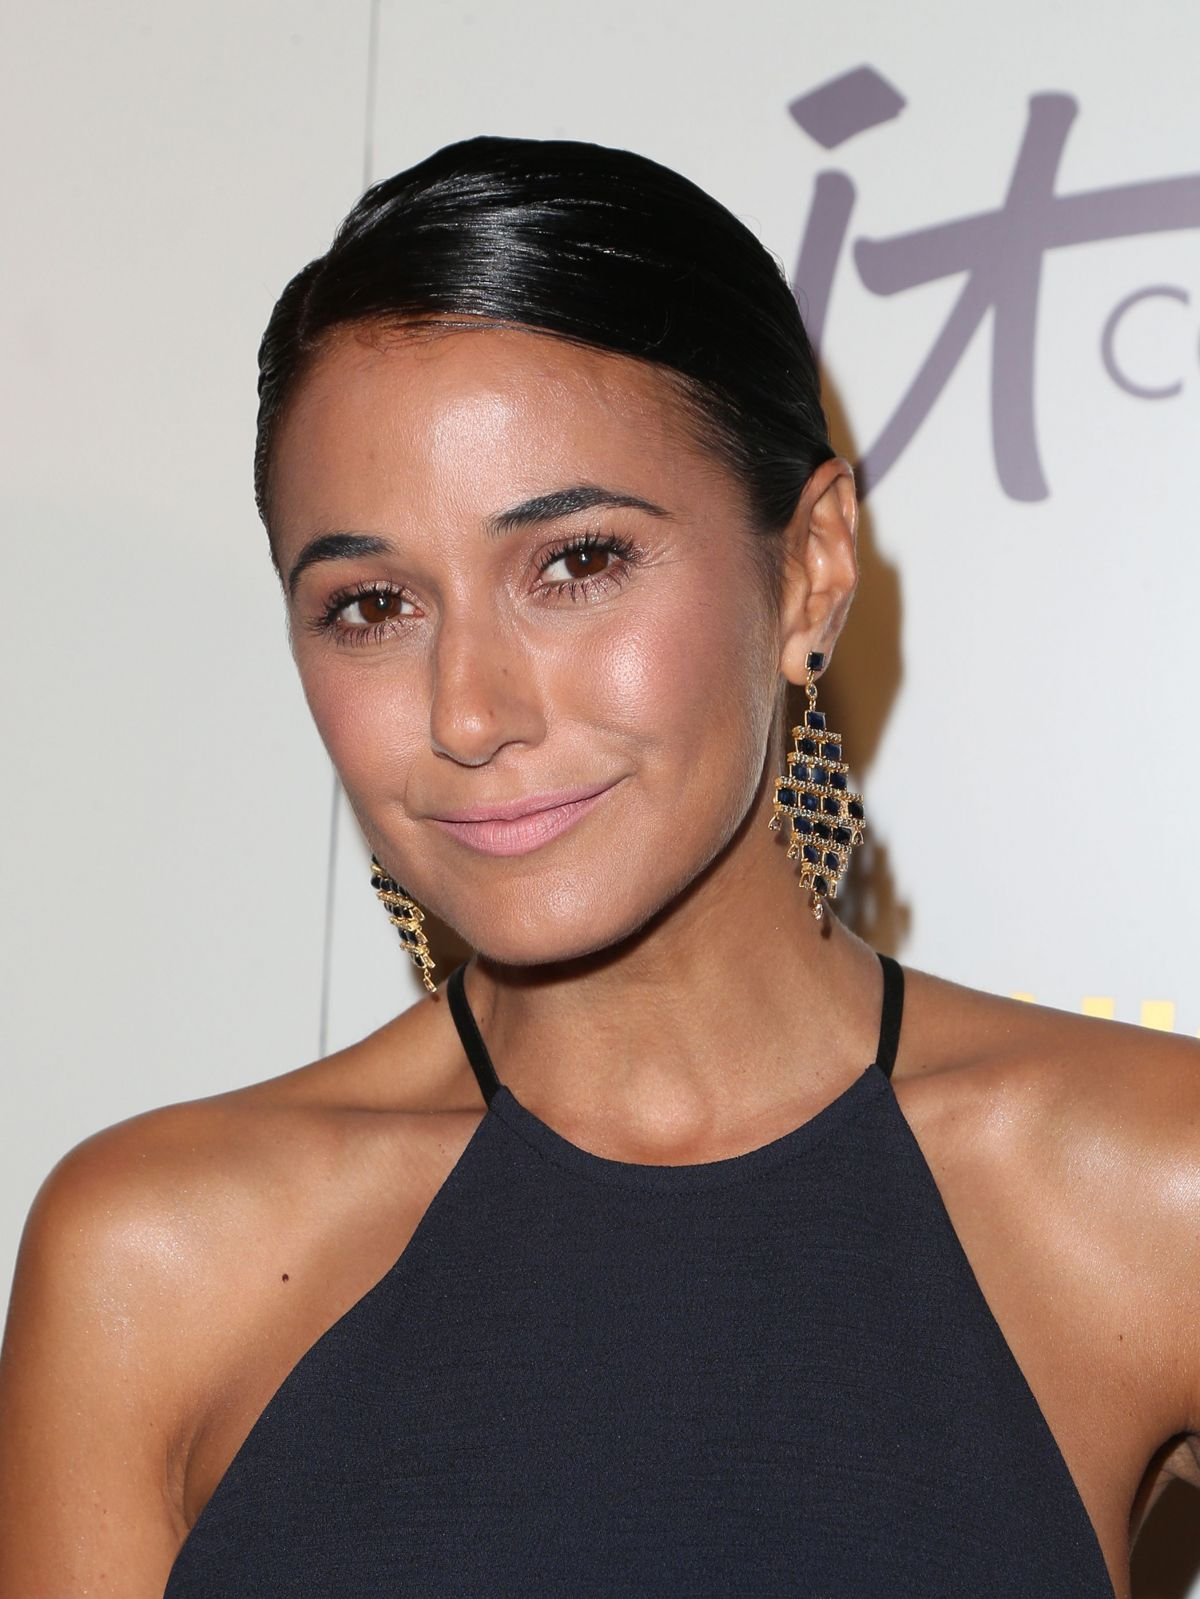 EMMANUELLE CHRIQUI at Women's Choice Awards in Los Angeles ...